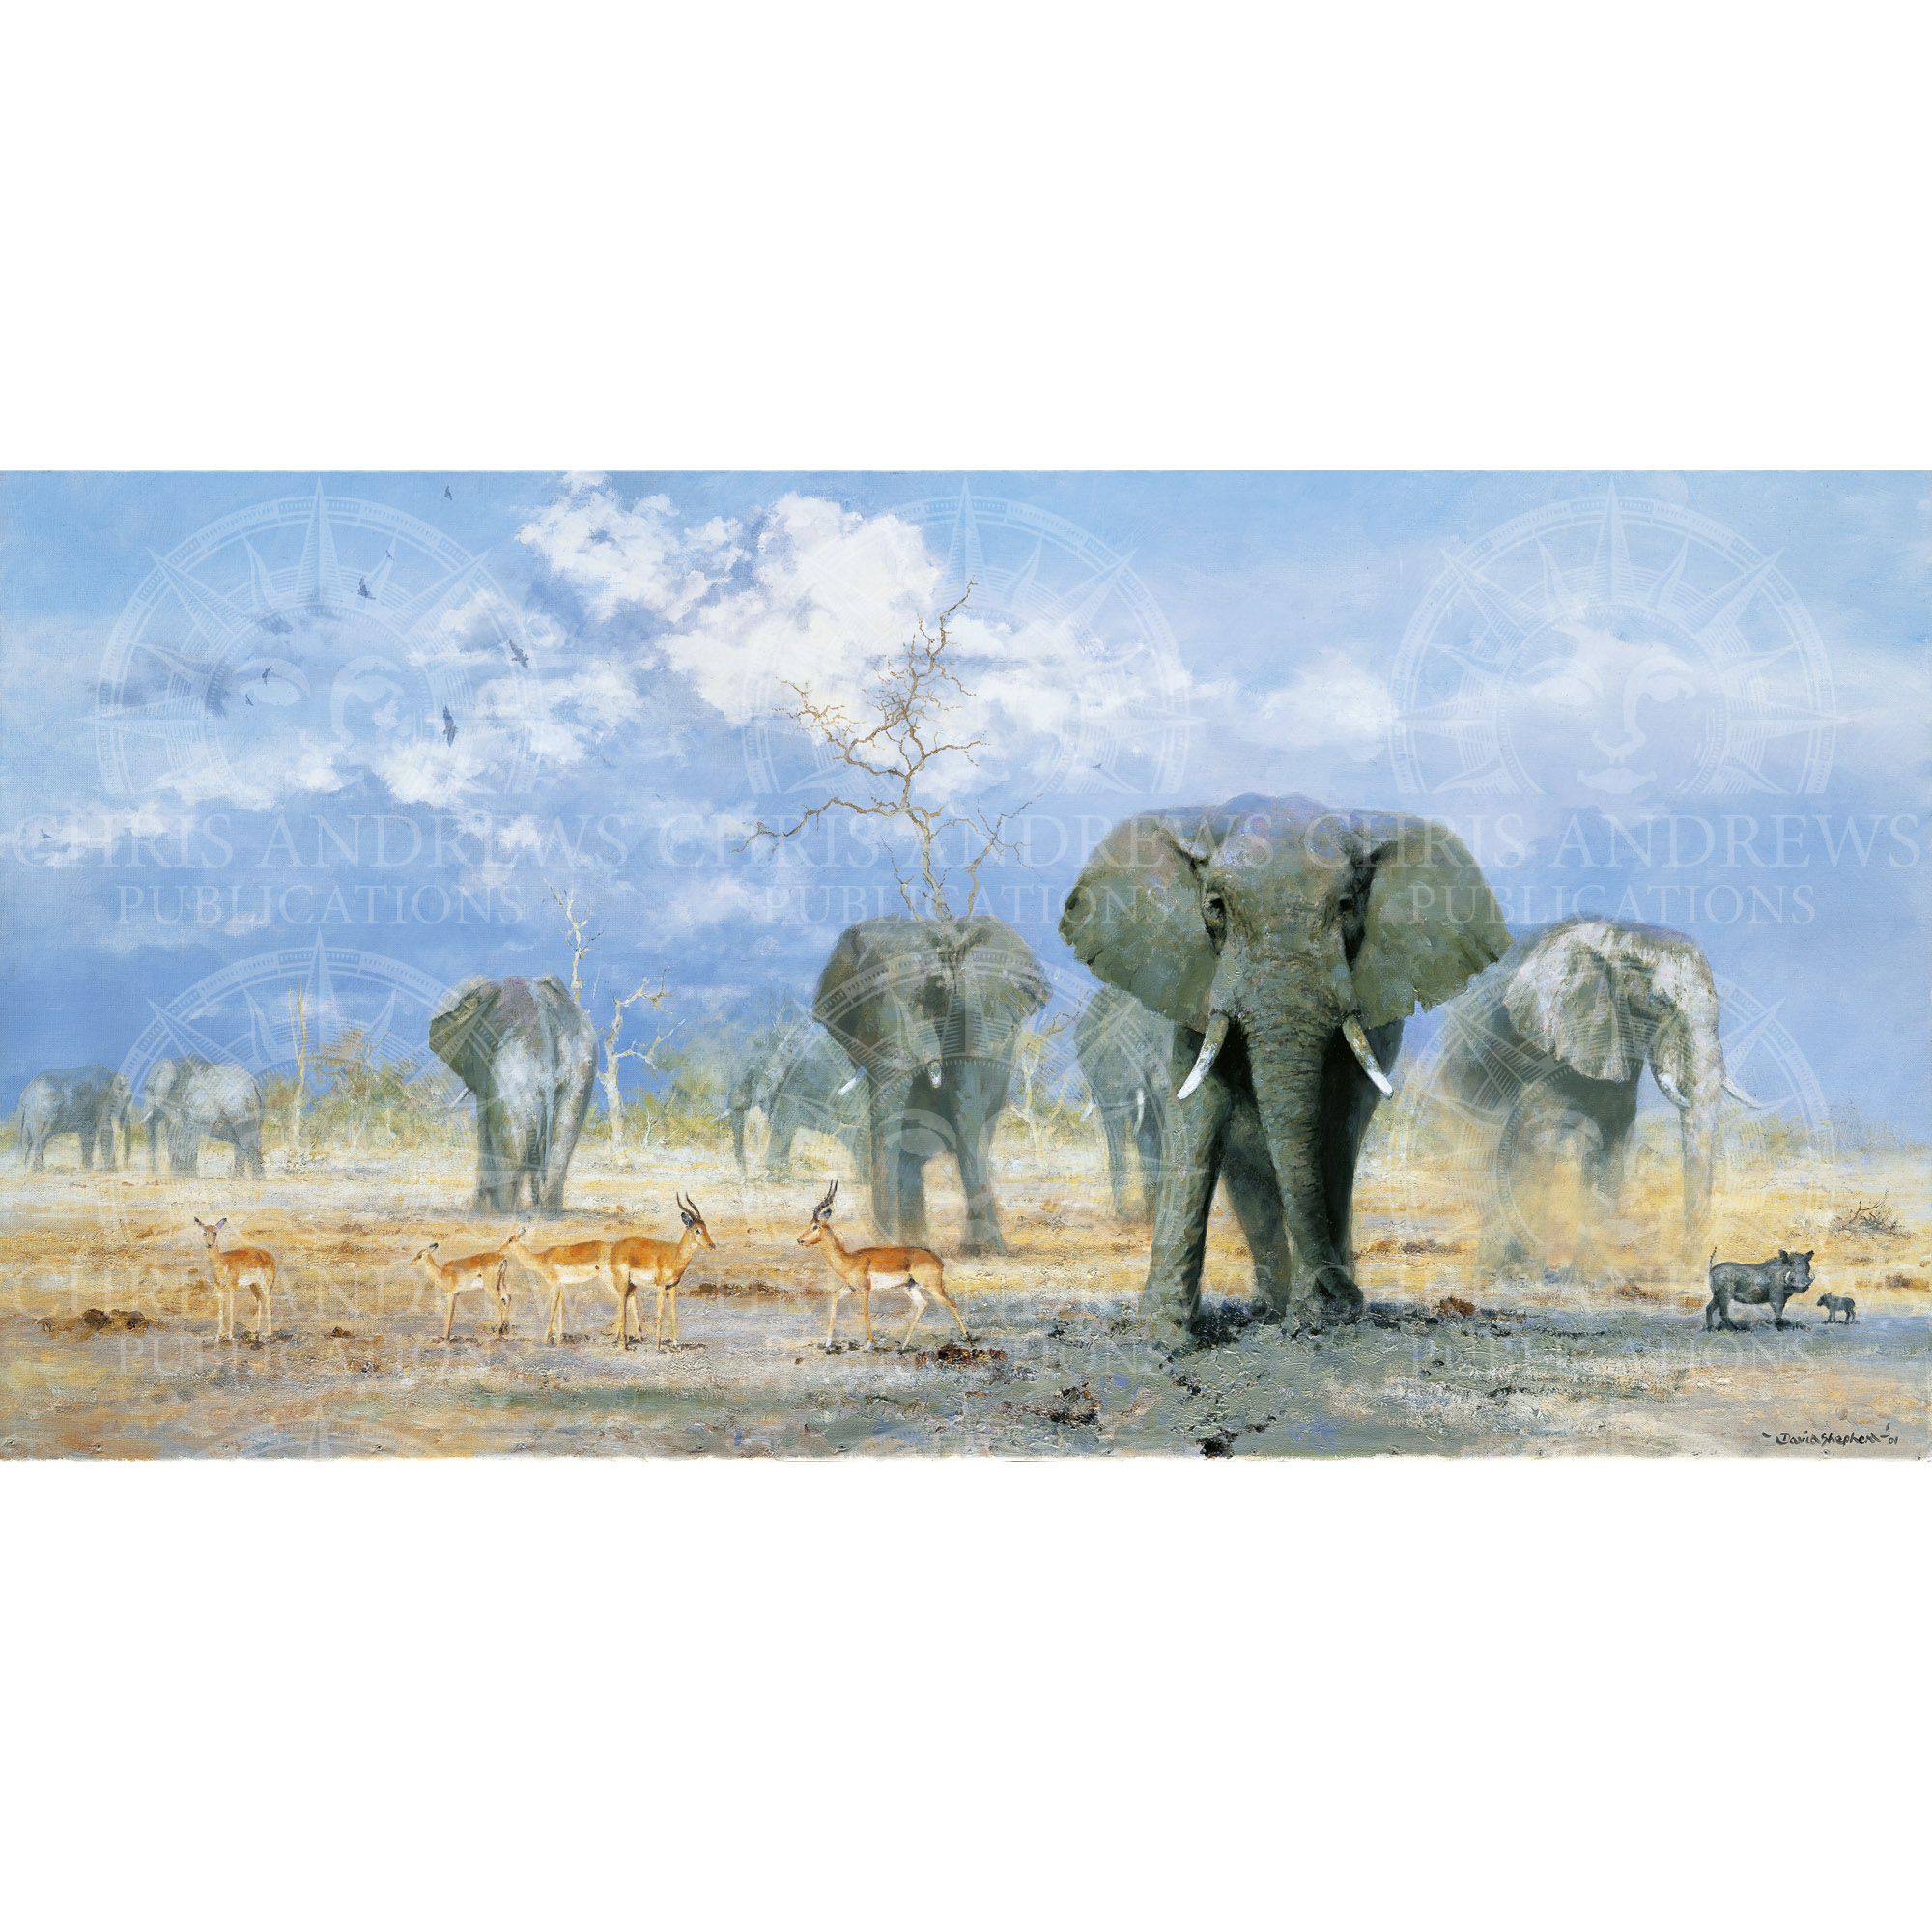 One of David Shepherd's paintings featured in the book